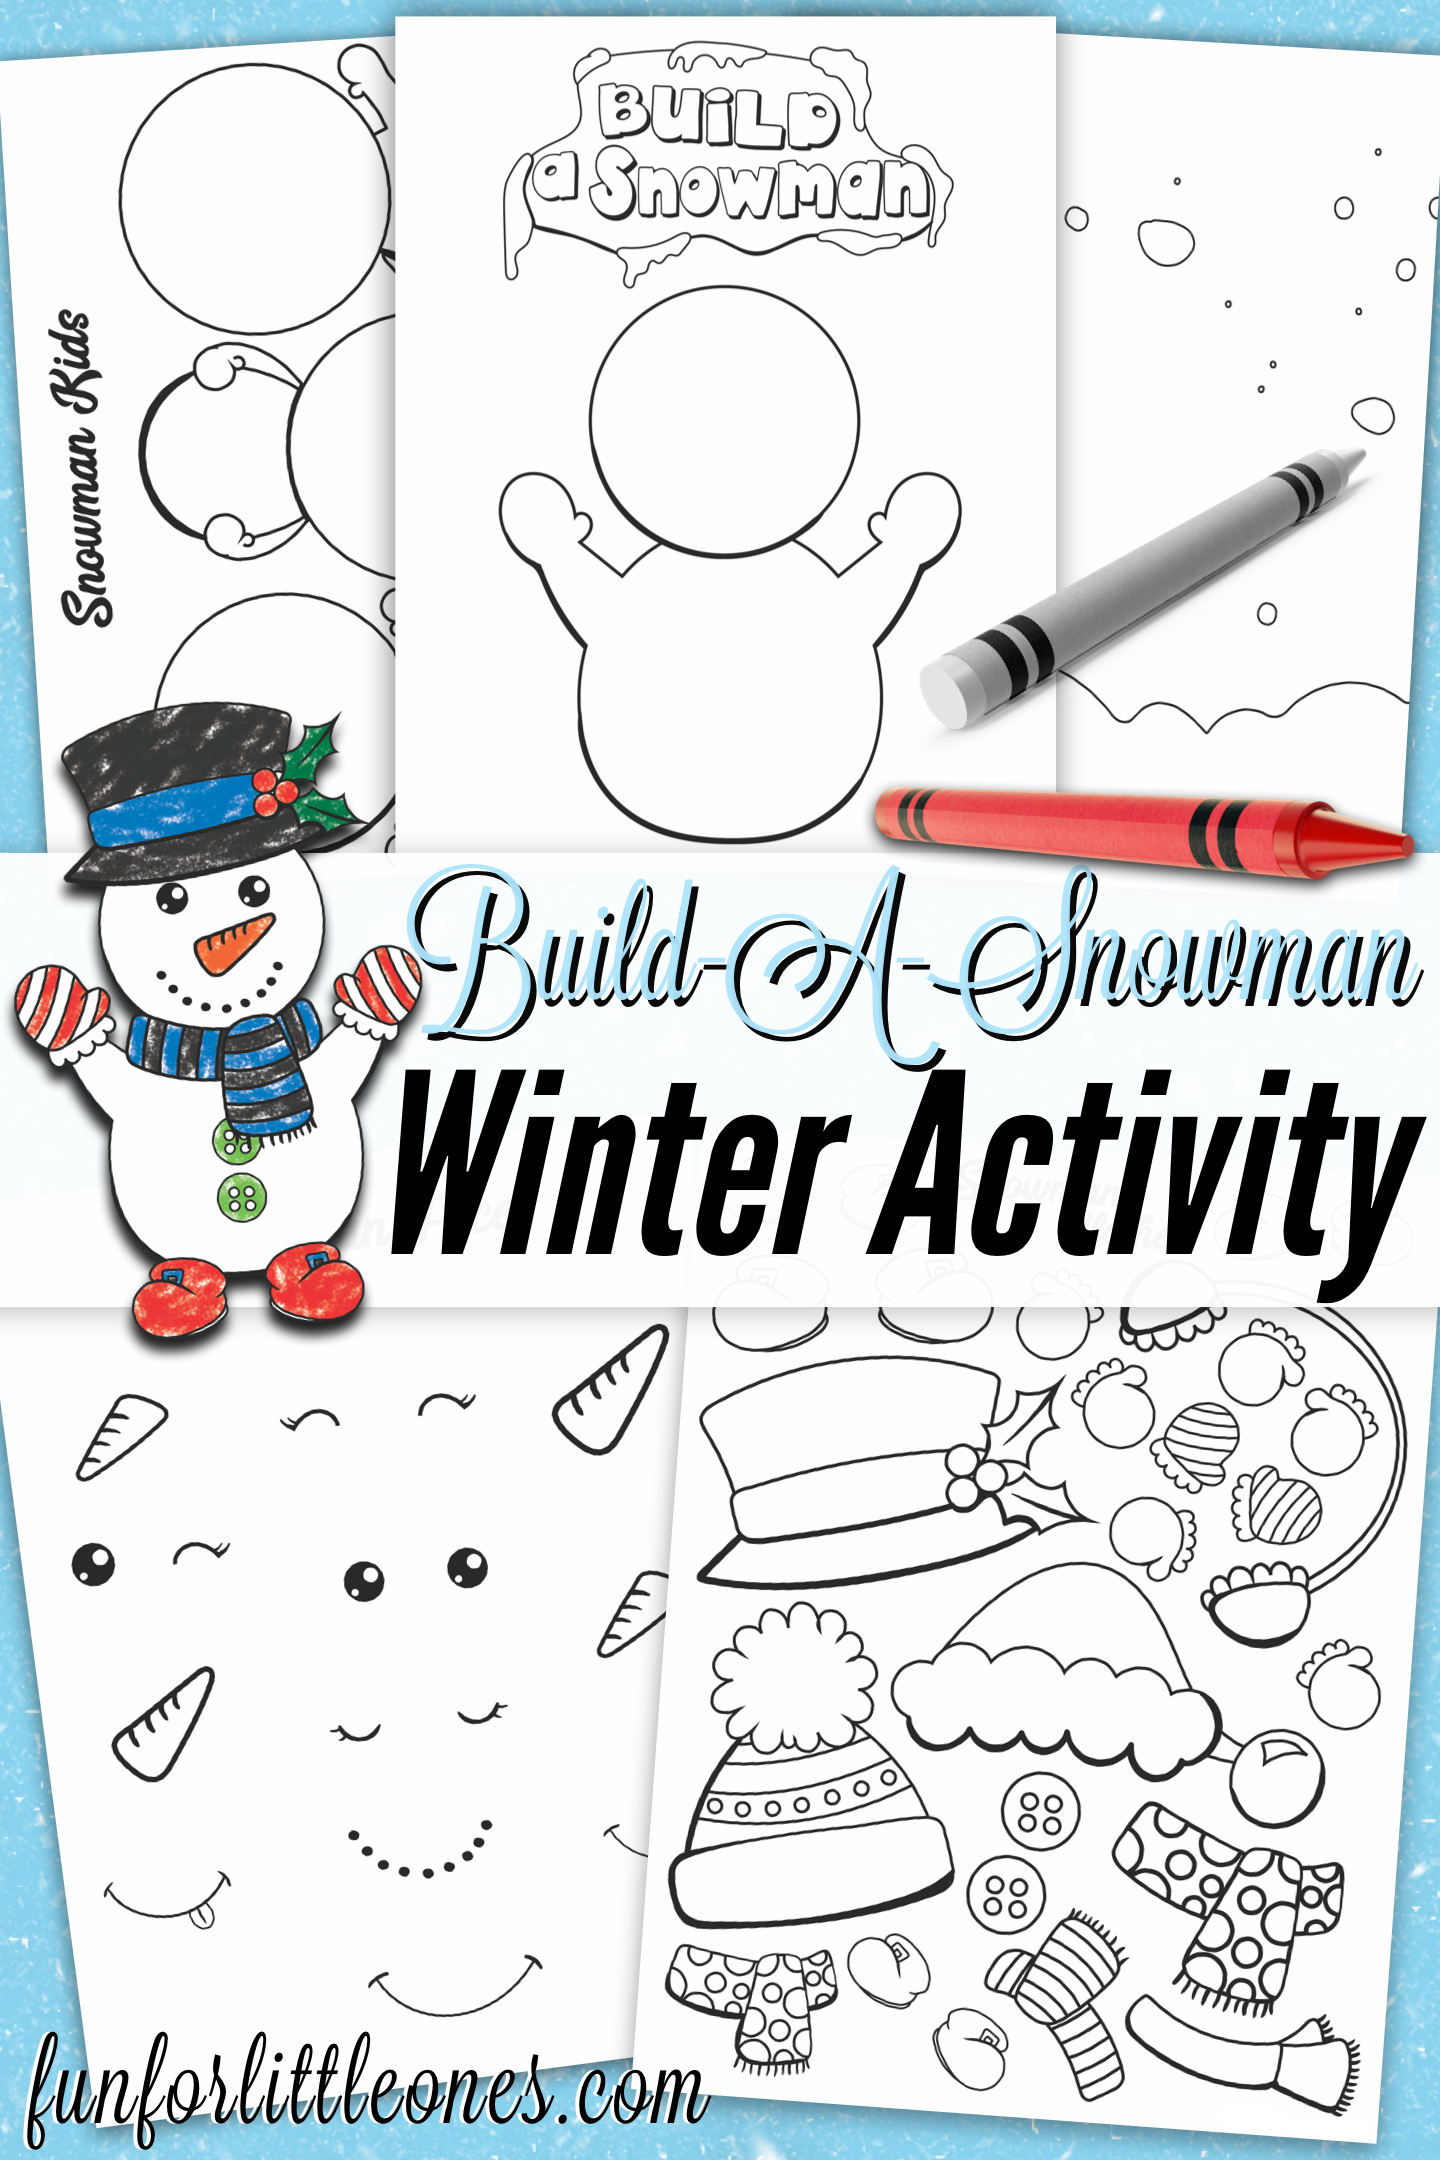 Build A Snowman Winter Activity For Kids Free Printable Winter Activities For Kids Winter Activities Preschool Winter Activities